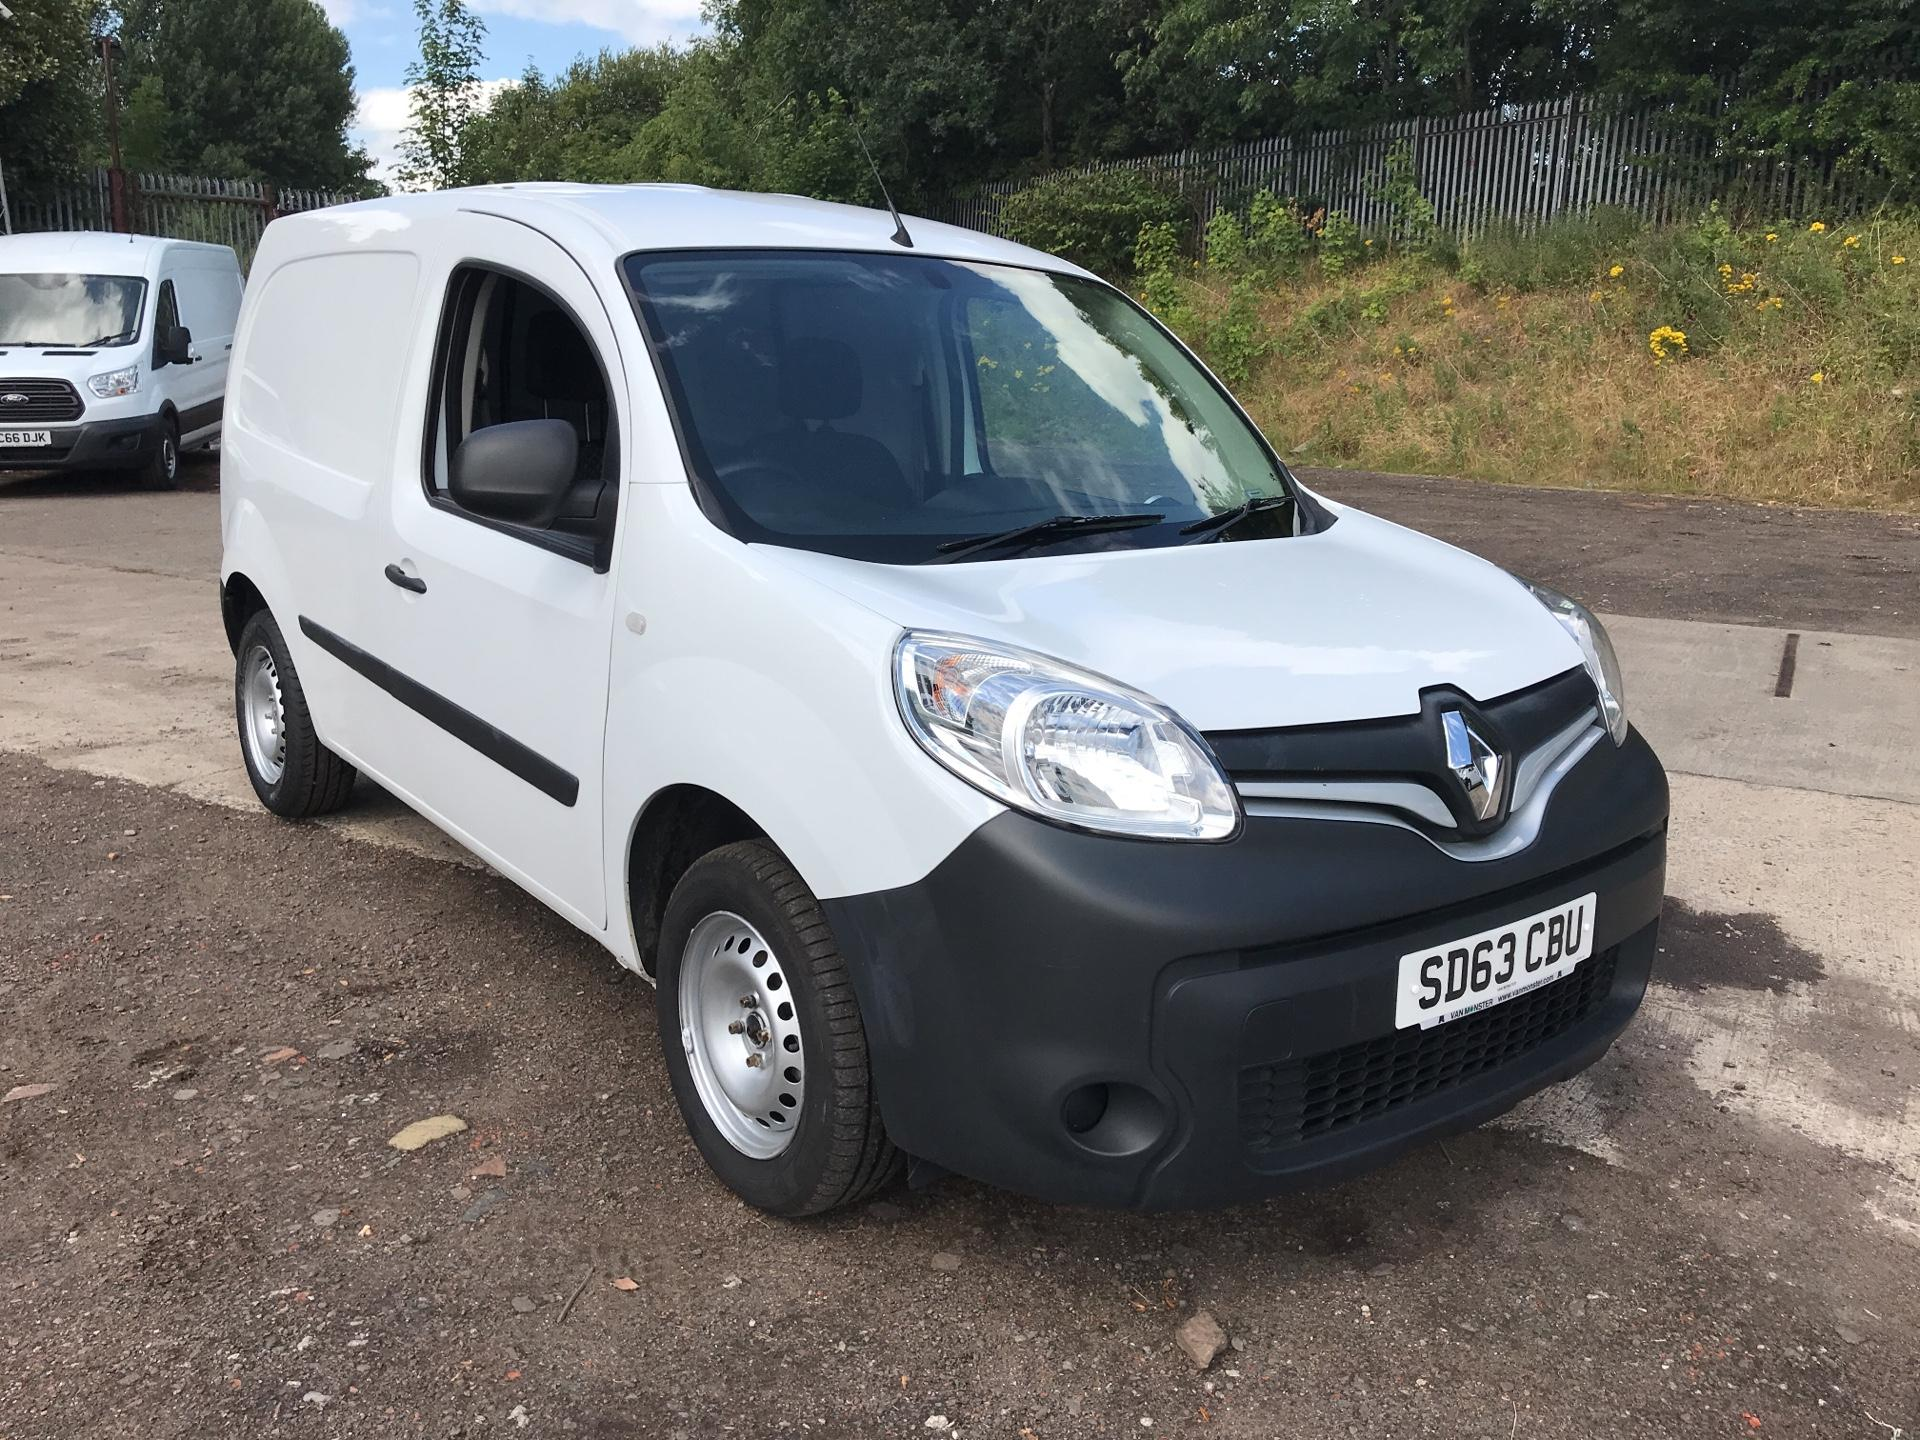 2013 Renault Kangoo ML19dci 75 Debut Van (SD63CBU)